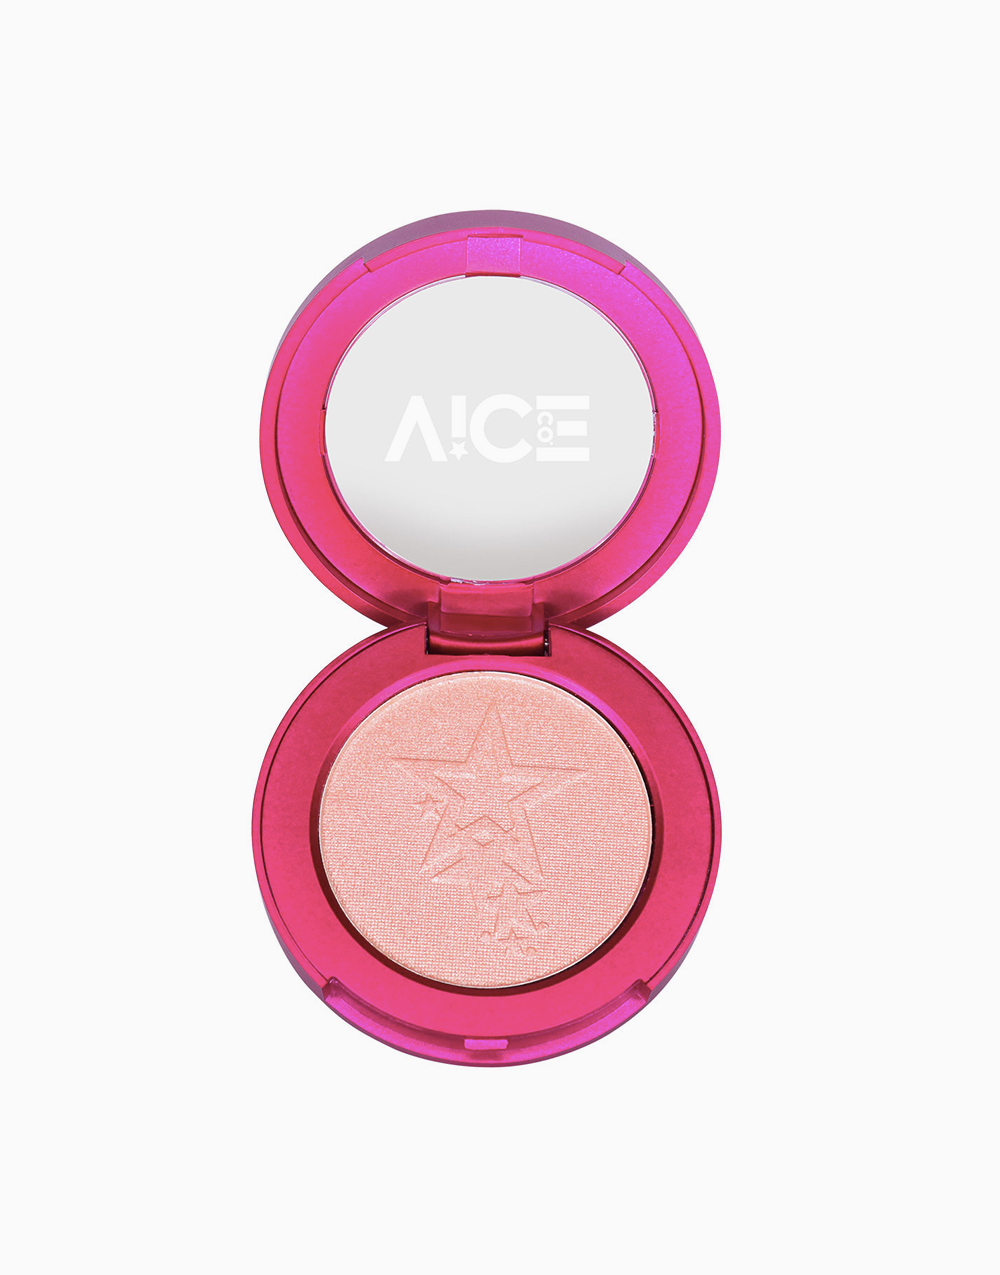 Aura Glow (3.5g) by Vice Cosmetics | Shimmering